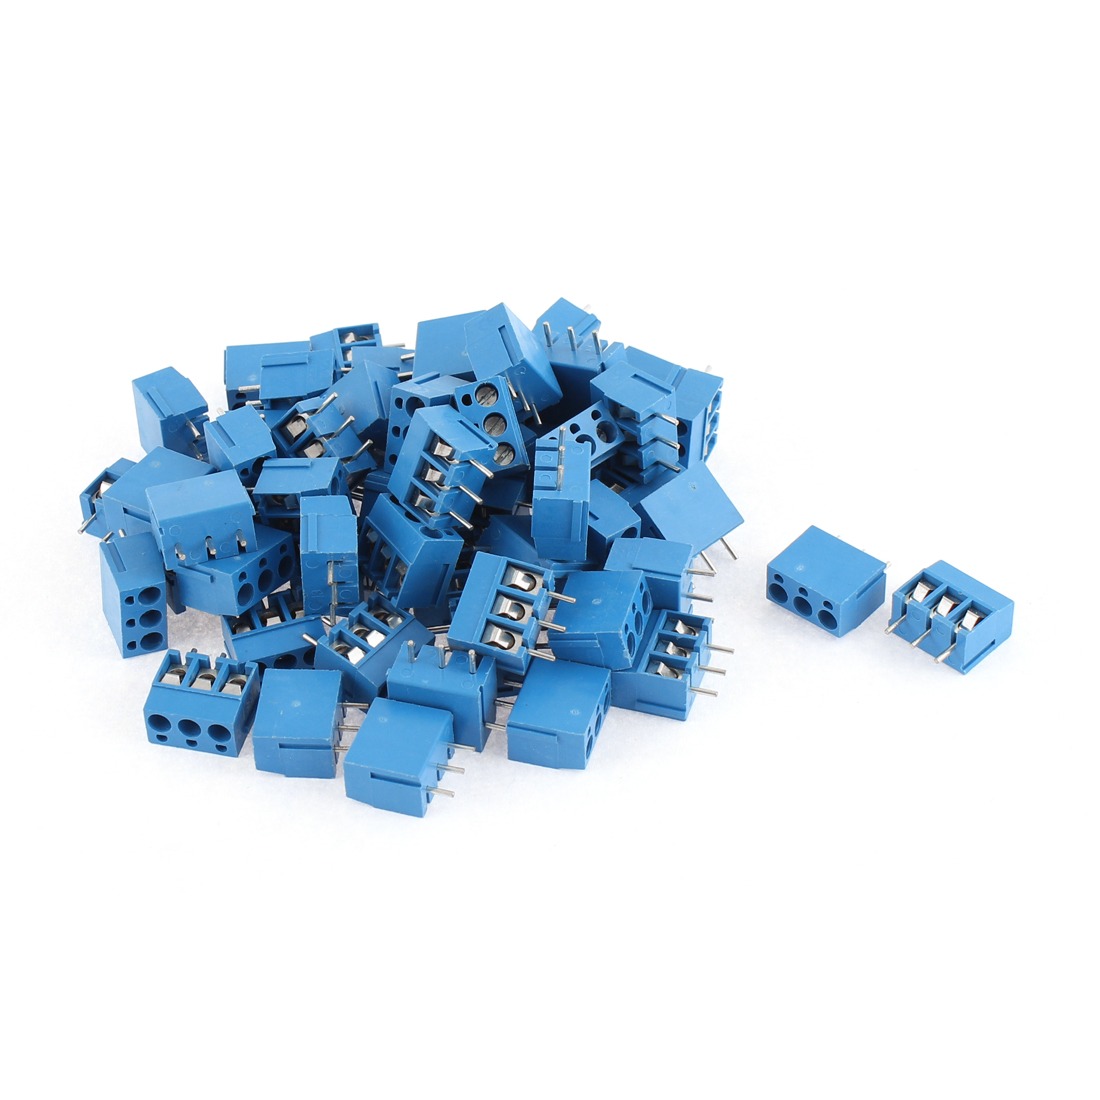 58pcs 300V 10A 3 Position 5.0mm Pitch Pluggable PCB Screw Terminal Block Cable Connector for AWG14-22 Wire